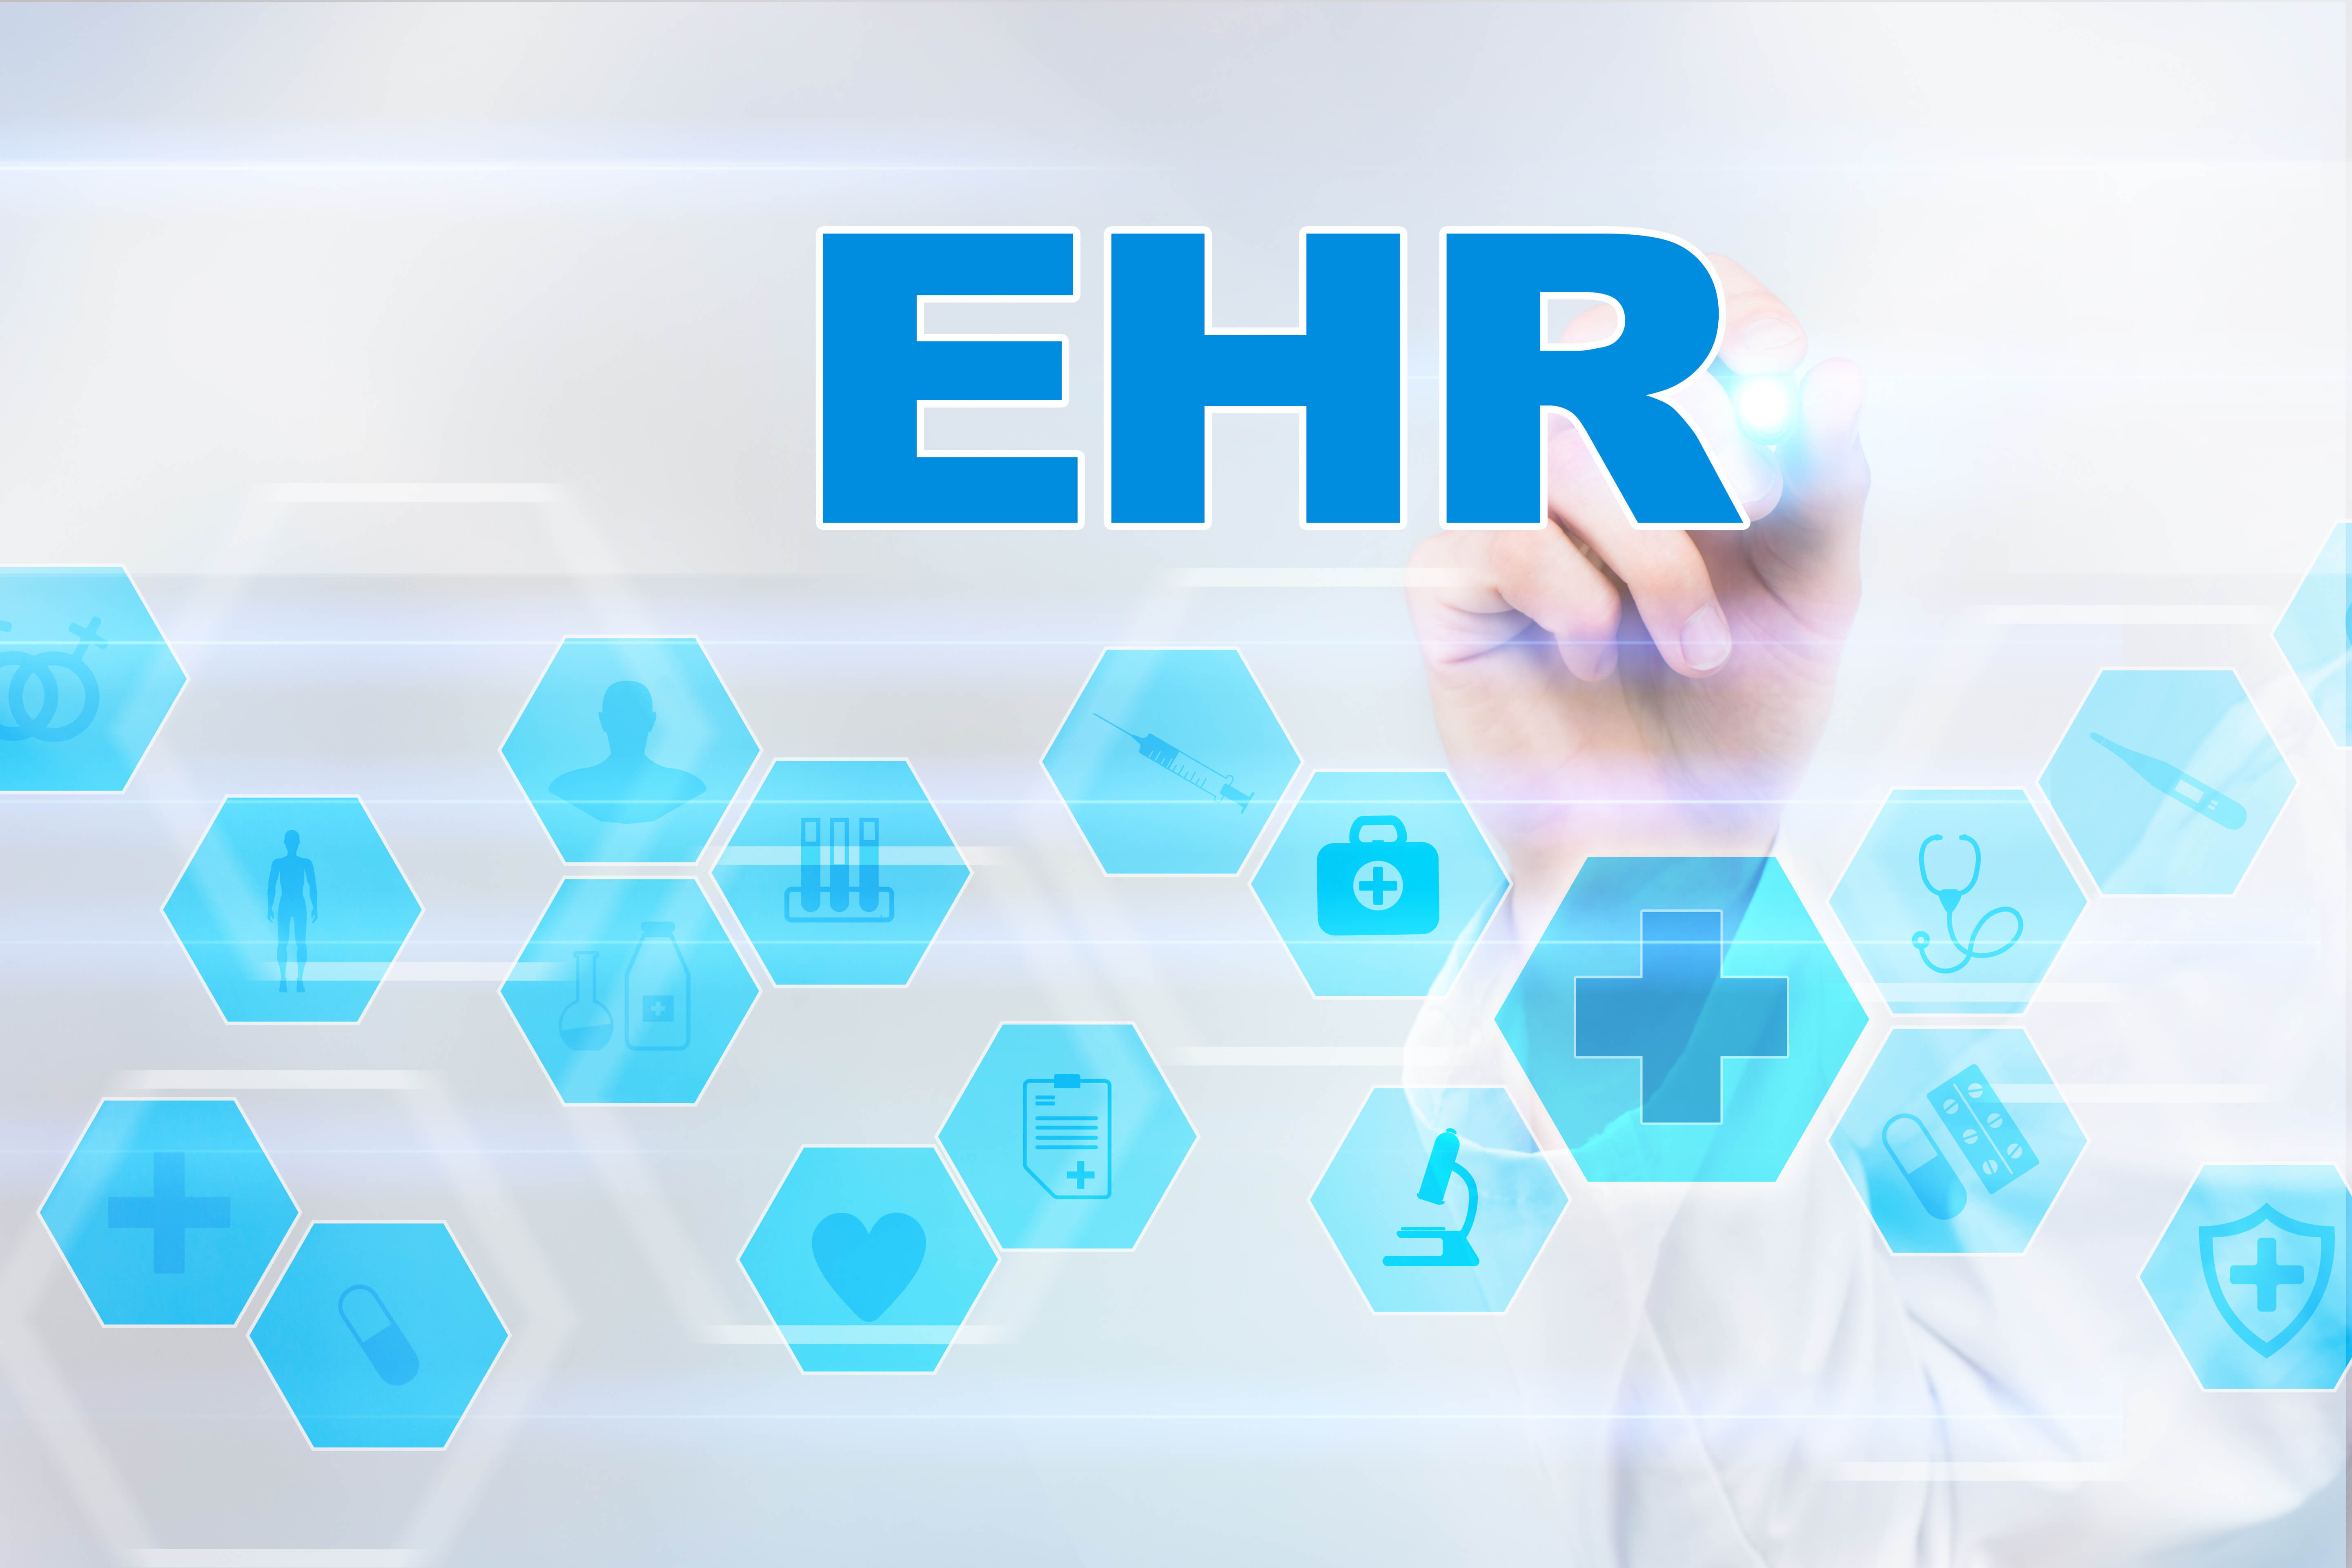 5 Reasons Why Electronic Health Records are Better than Paper Records